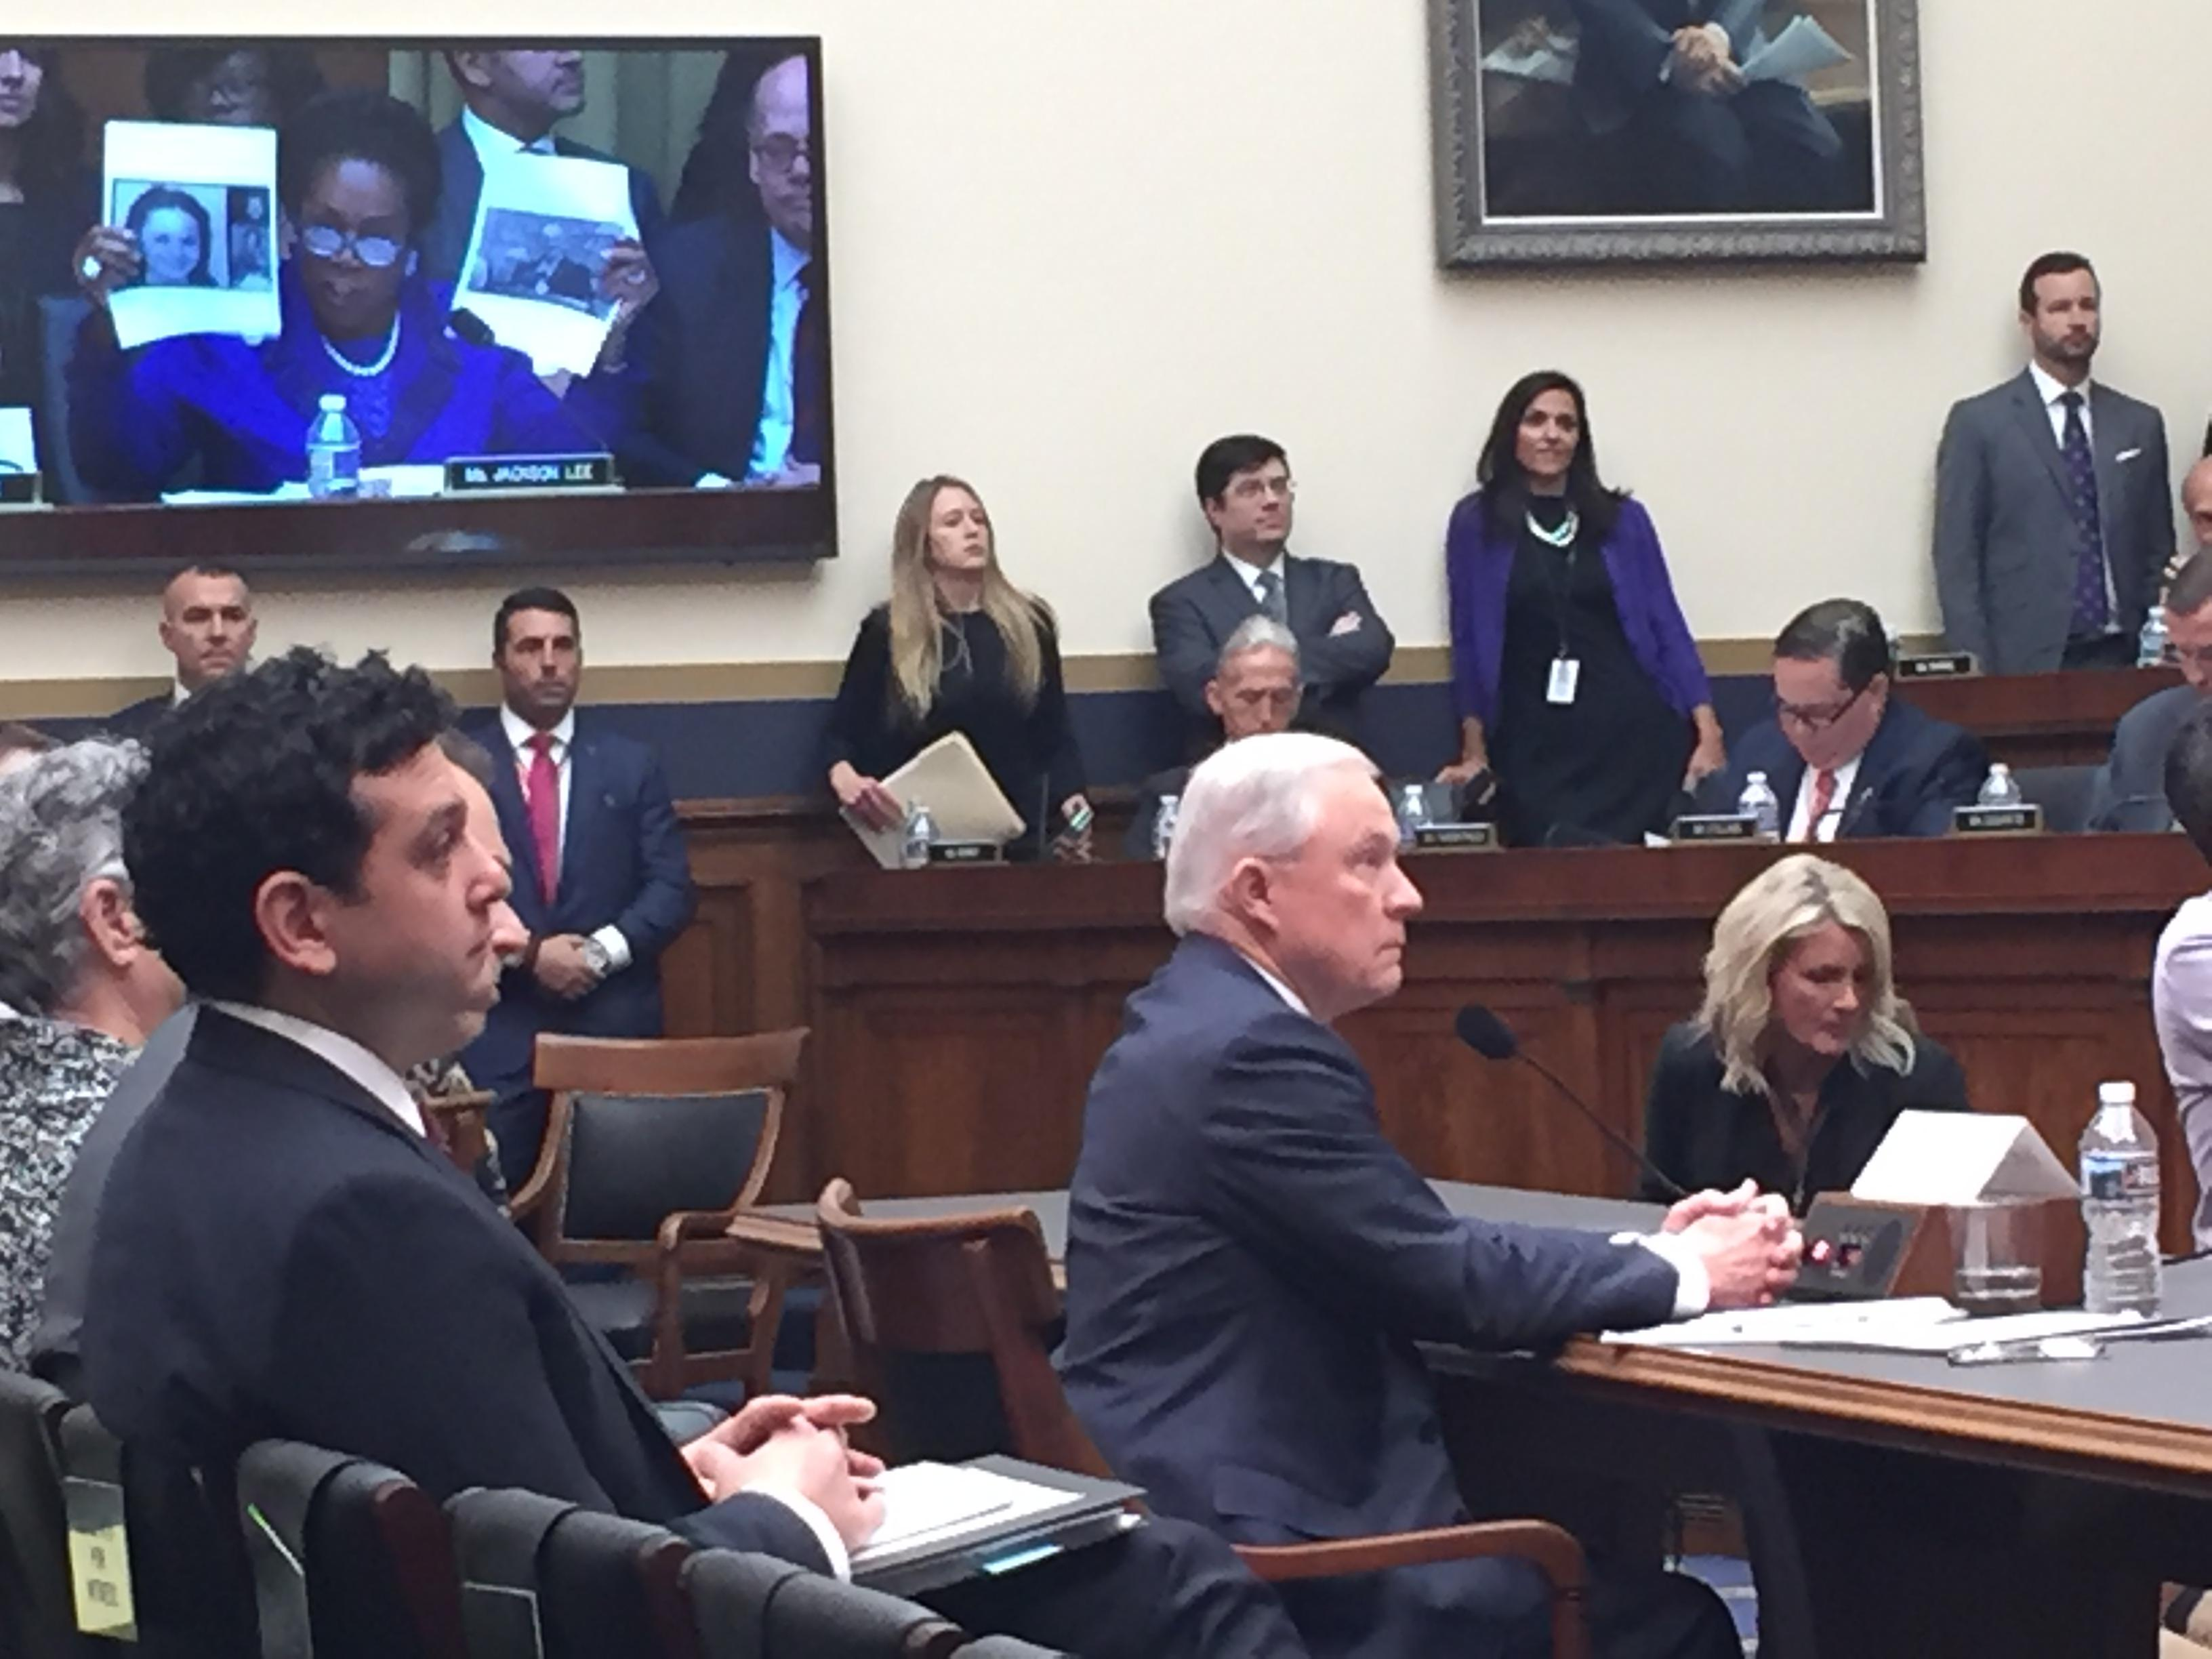 FILE: Image shows Attorney General Jeff Sessions testifying before the House Judiciary Committee on Tuesday, November 14, 2017.  (Sinclair Broadcast Group)